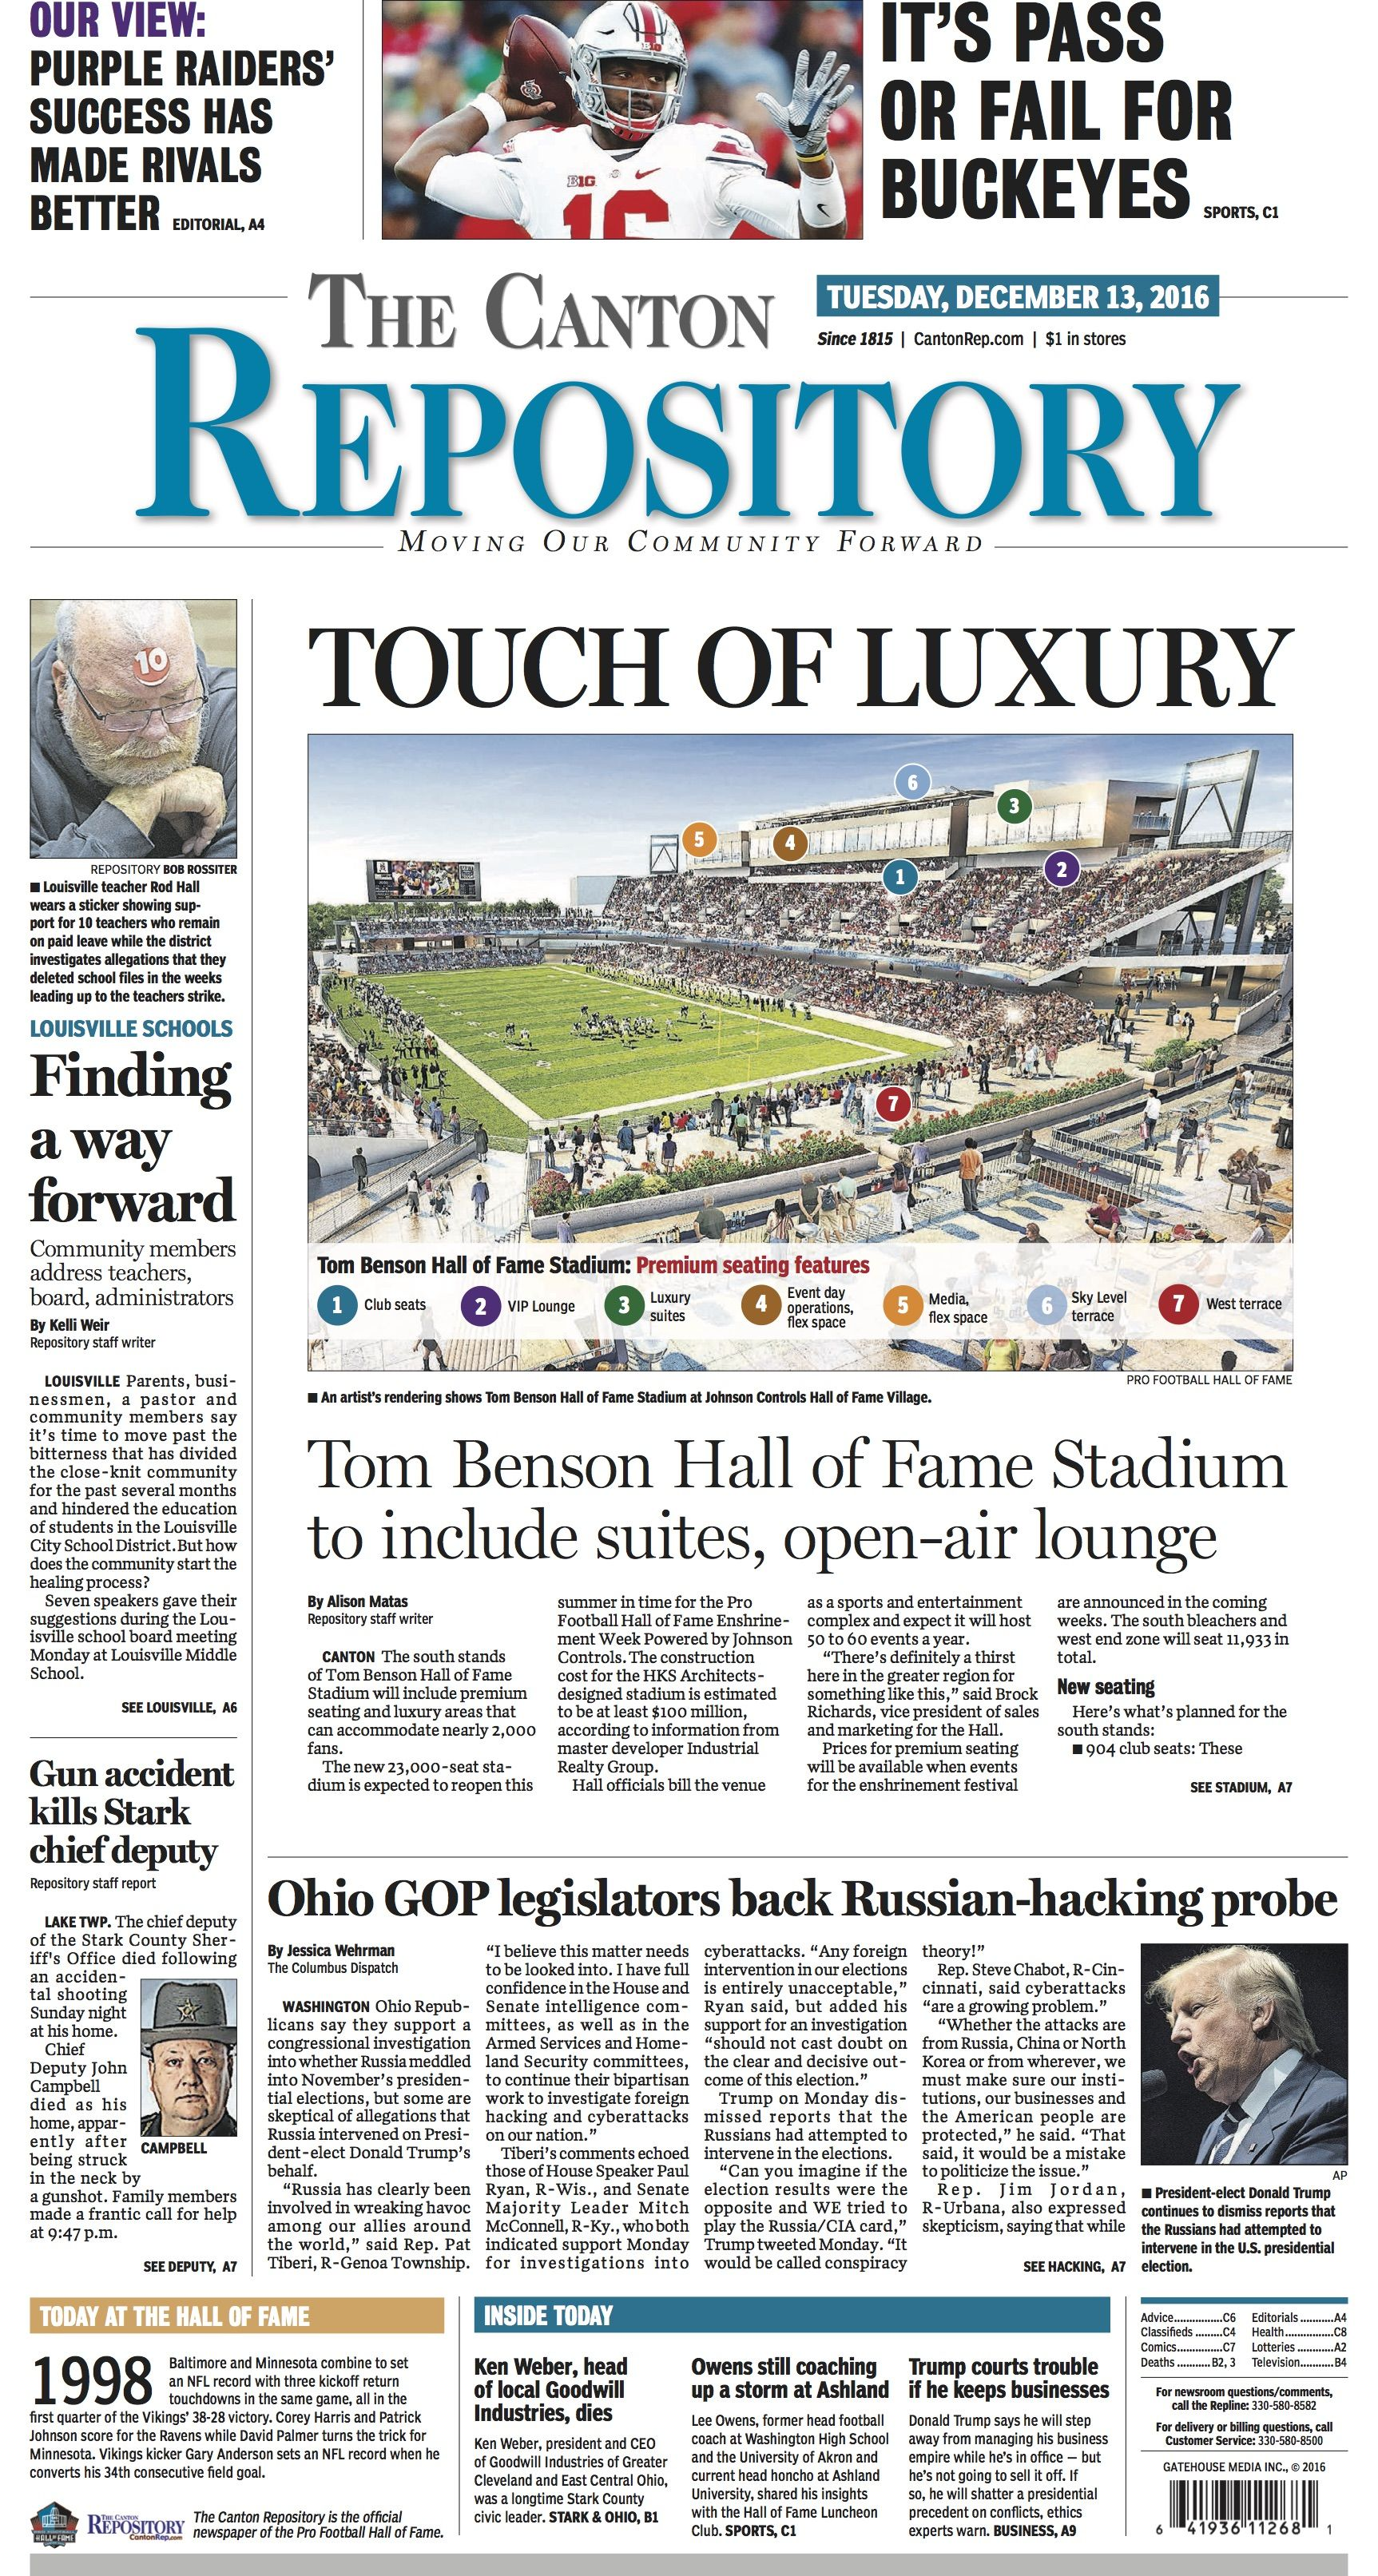 The front page of The Canton Repository for December 13